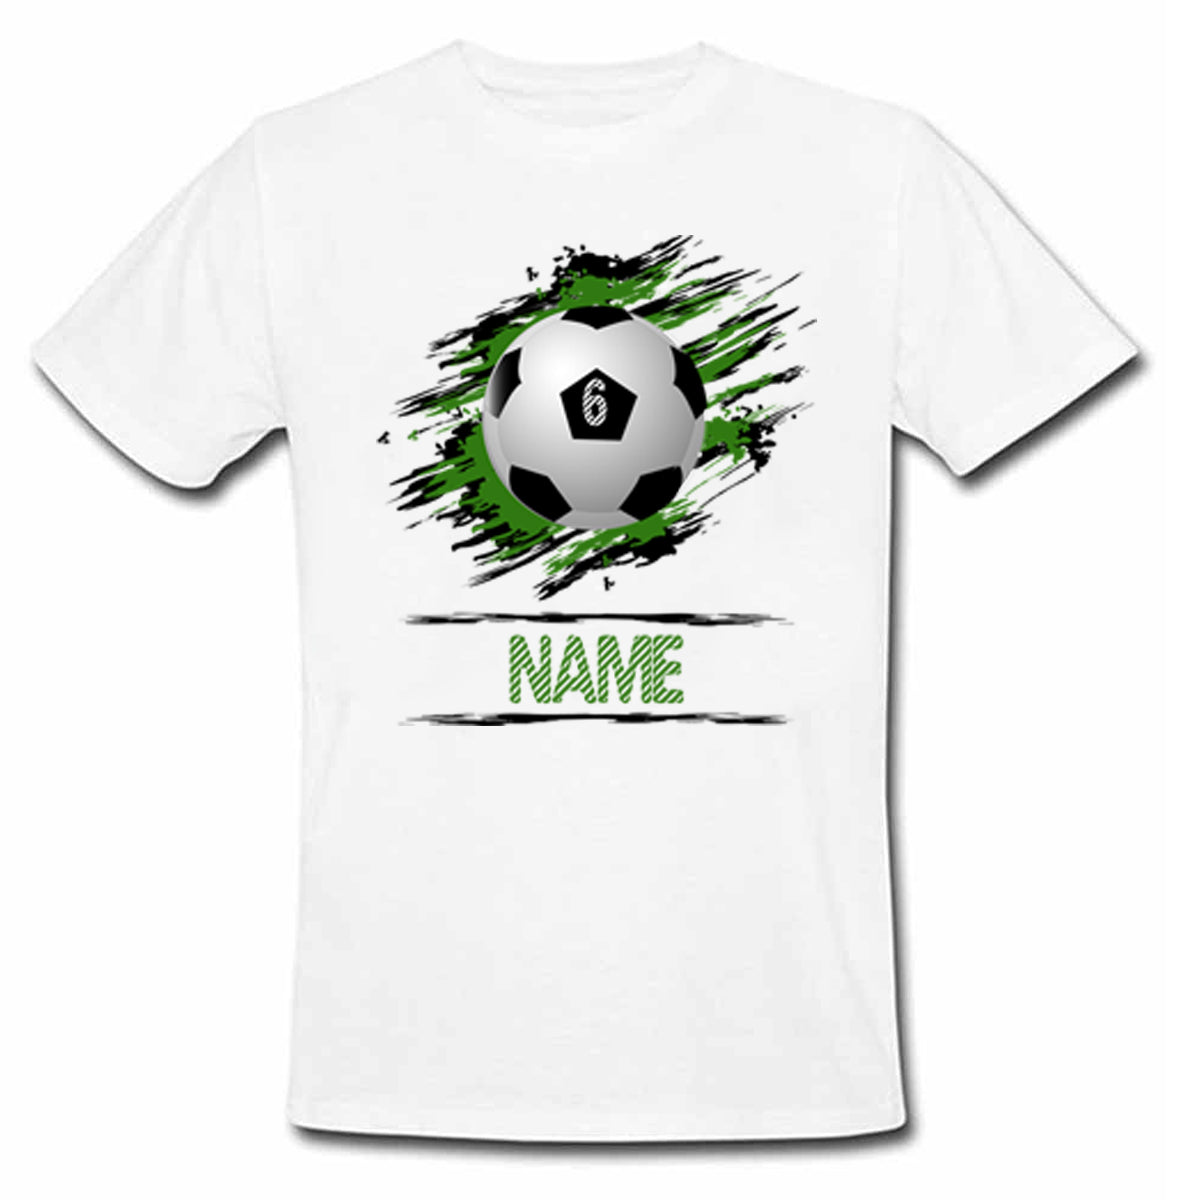 Sprinklecart Personalized Name Printed Football 6th Birthday Kids Poly-Cotton T Shirt (White)